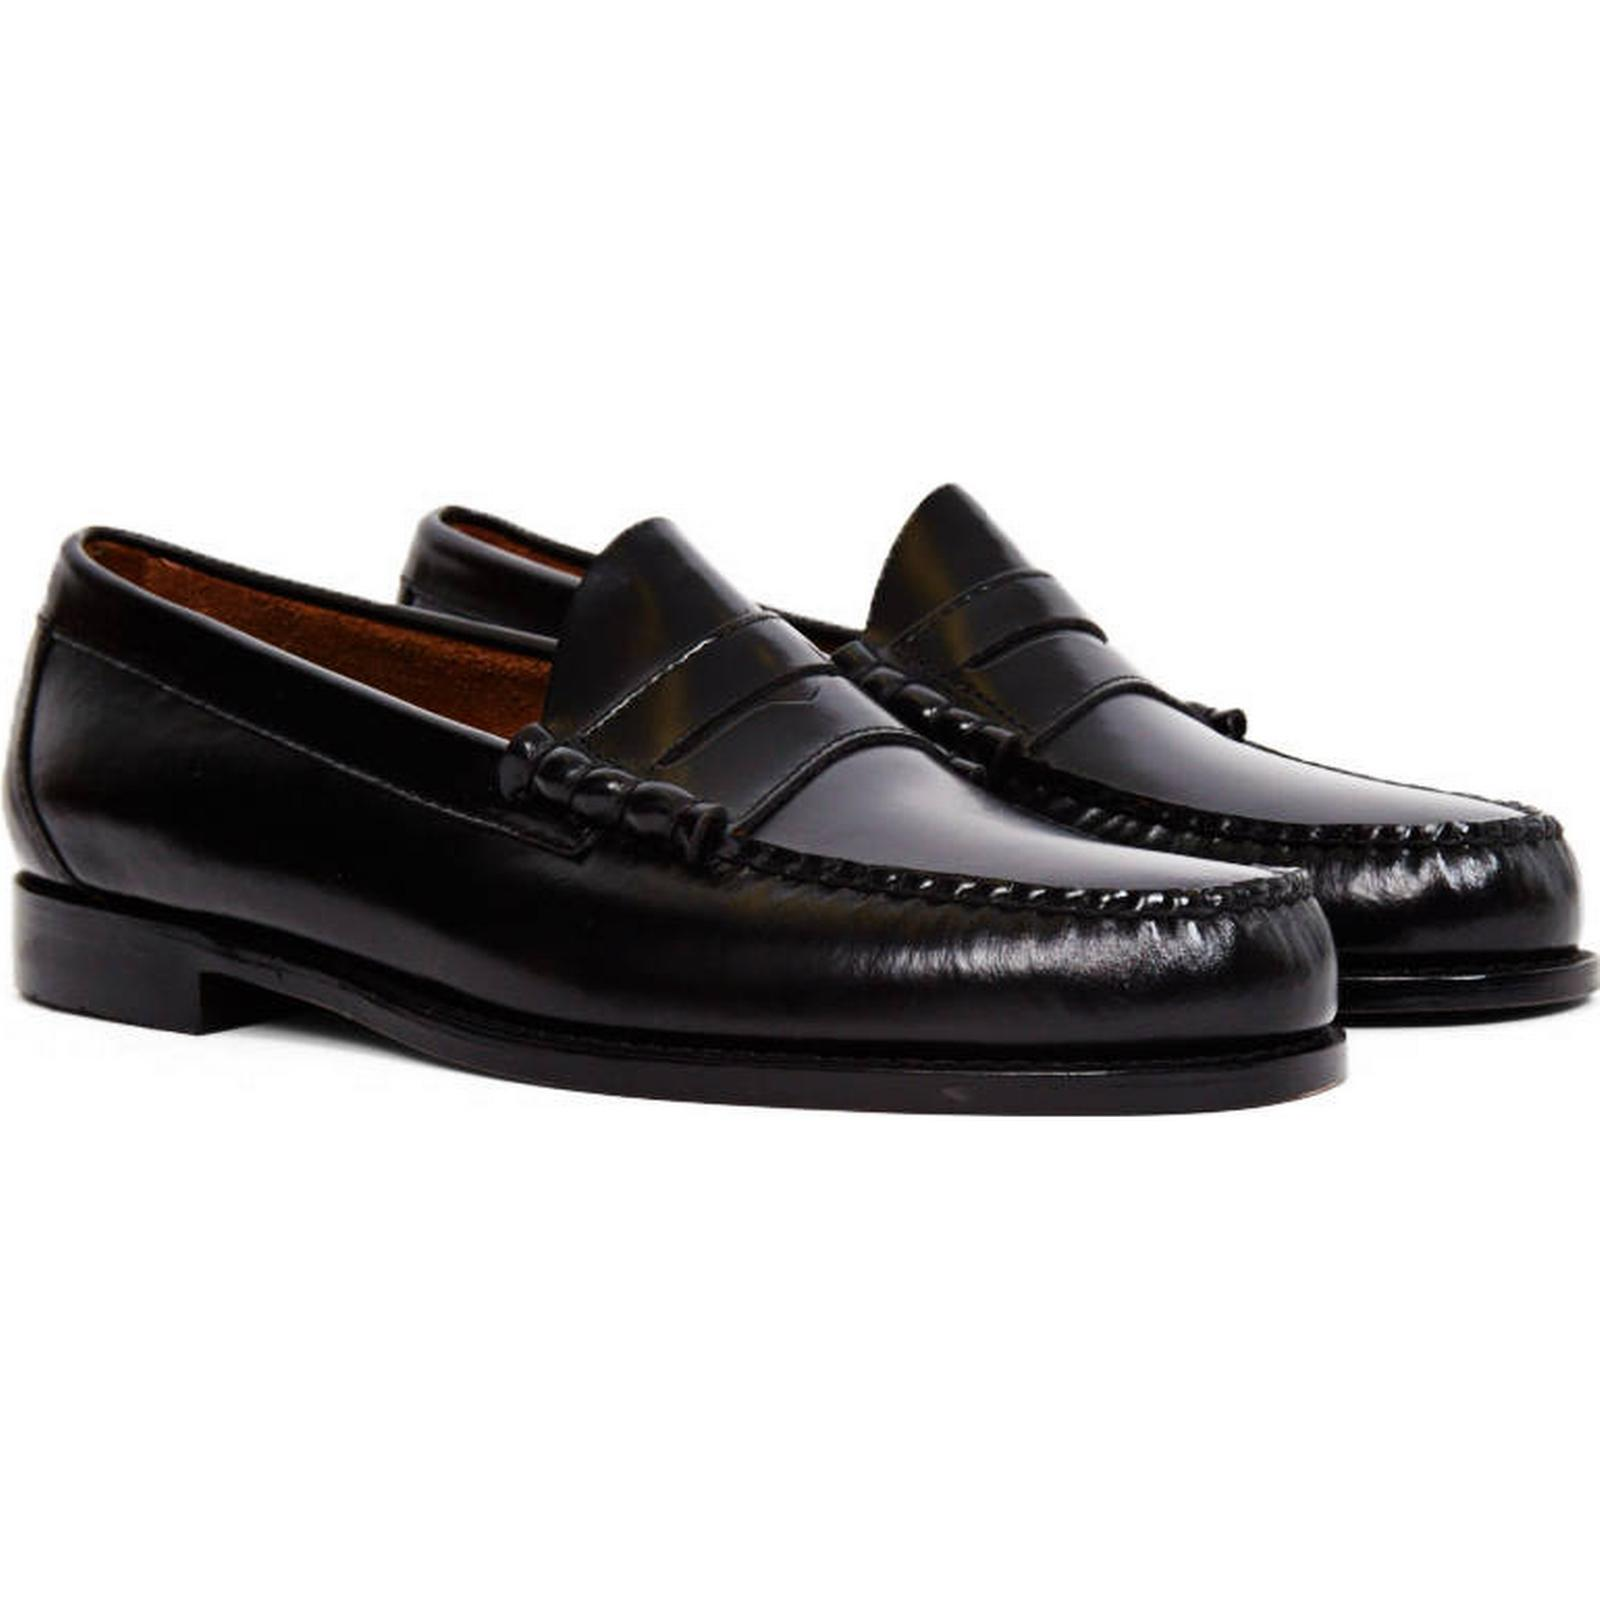 G.H. Weejuns Bass & Co. Weejuns G.H. Classic Penny Loafer Black 594f99